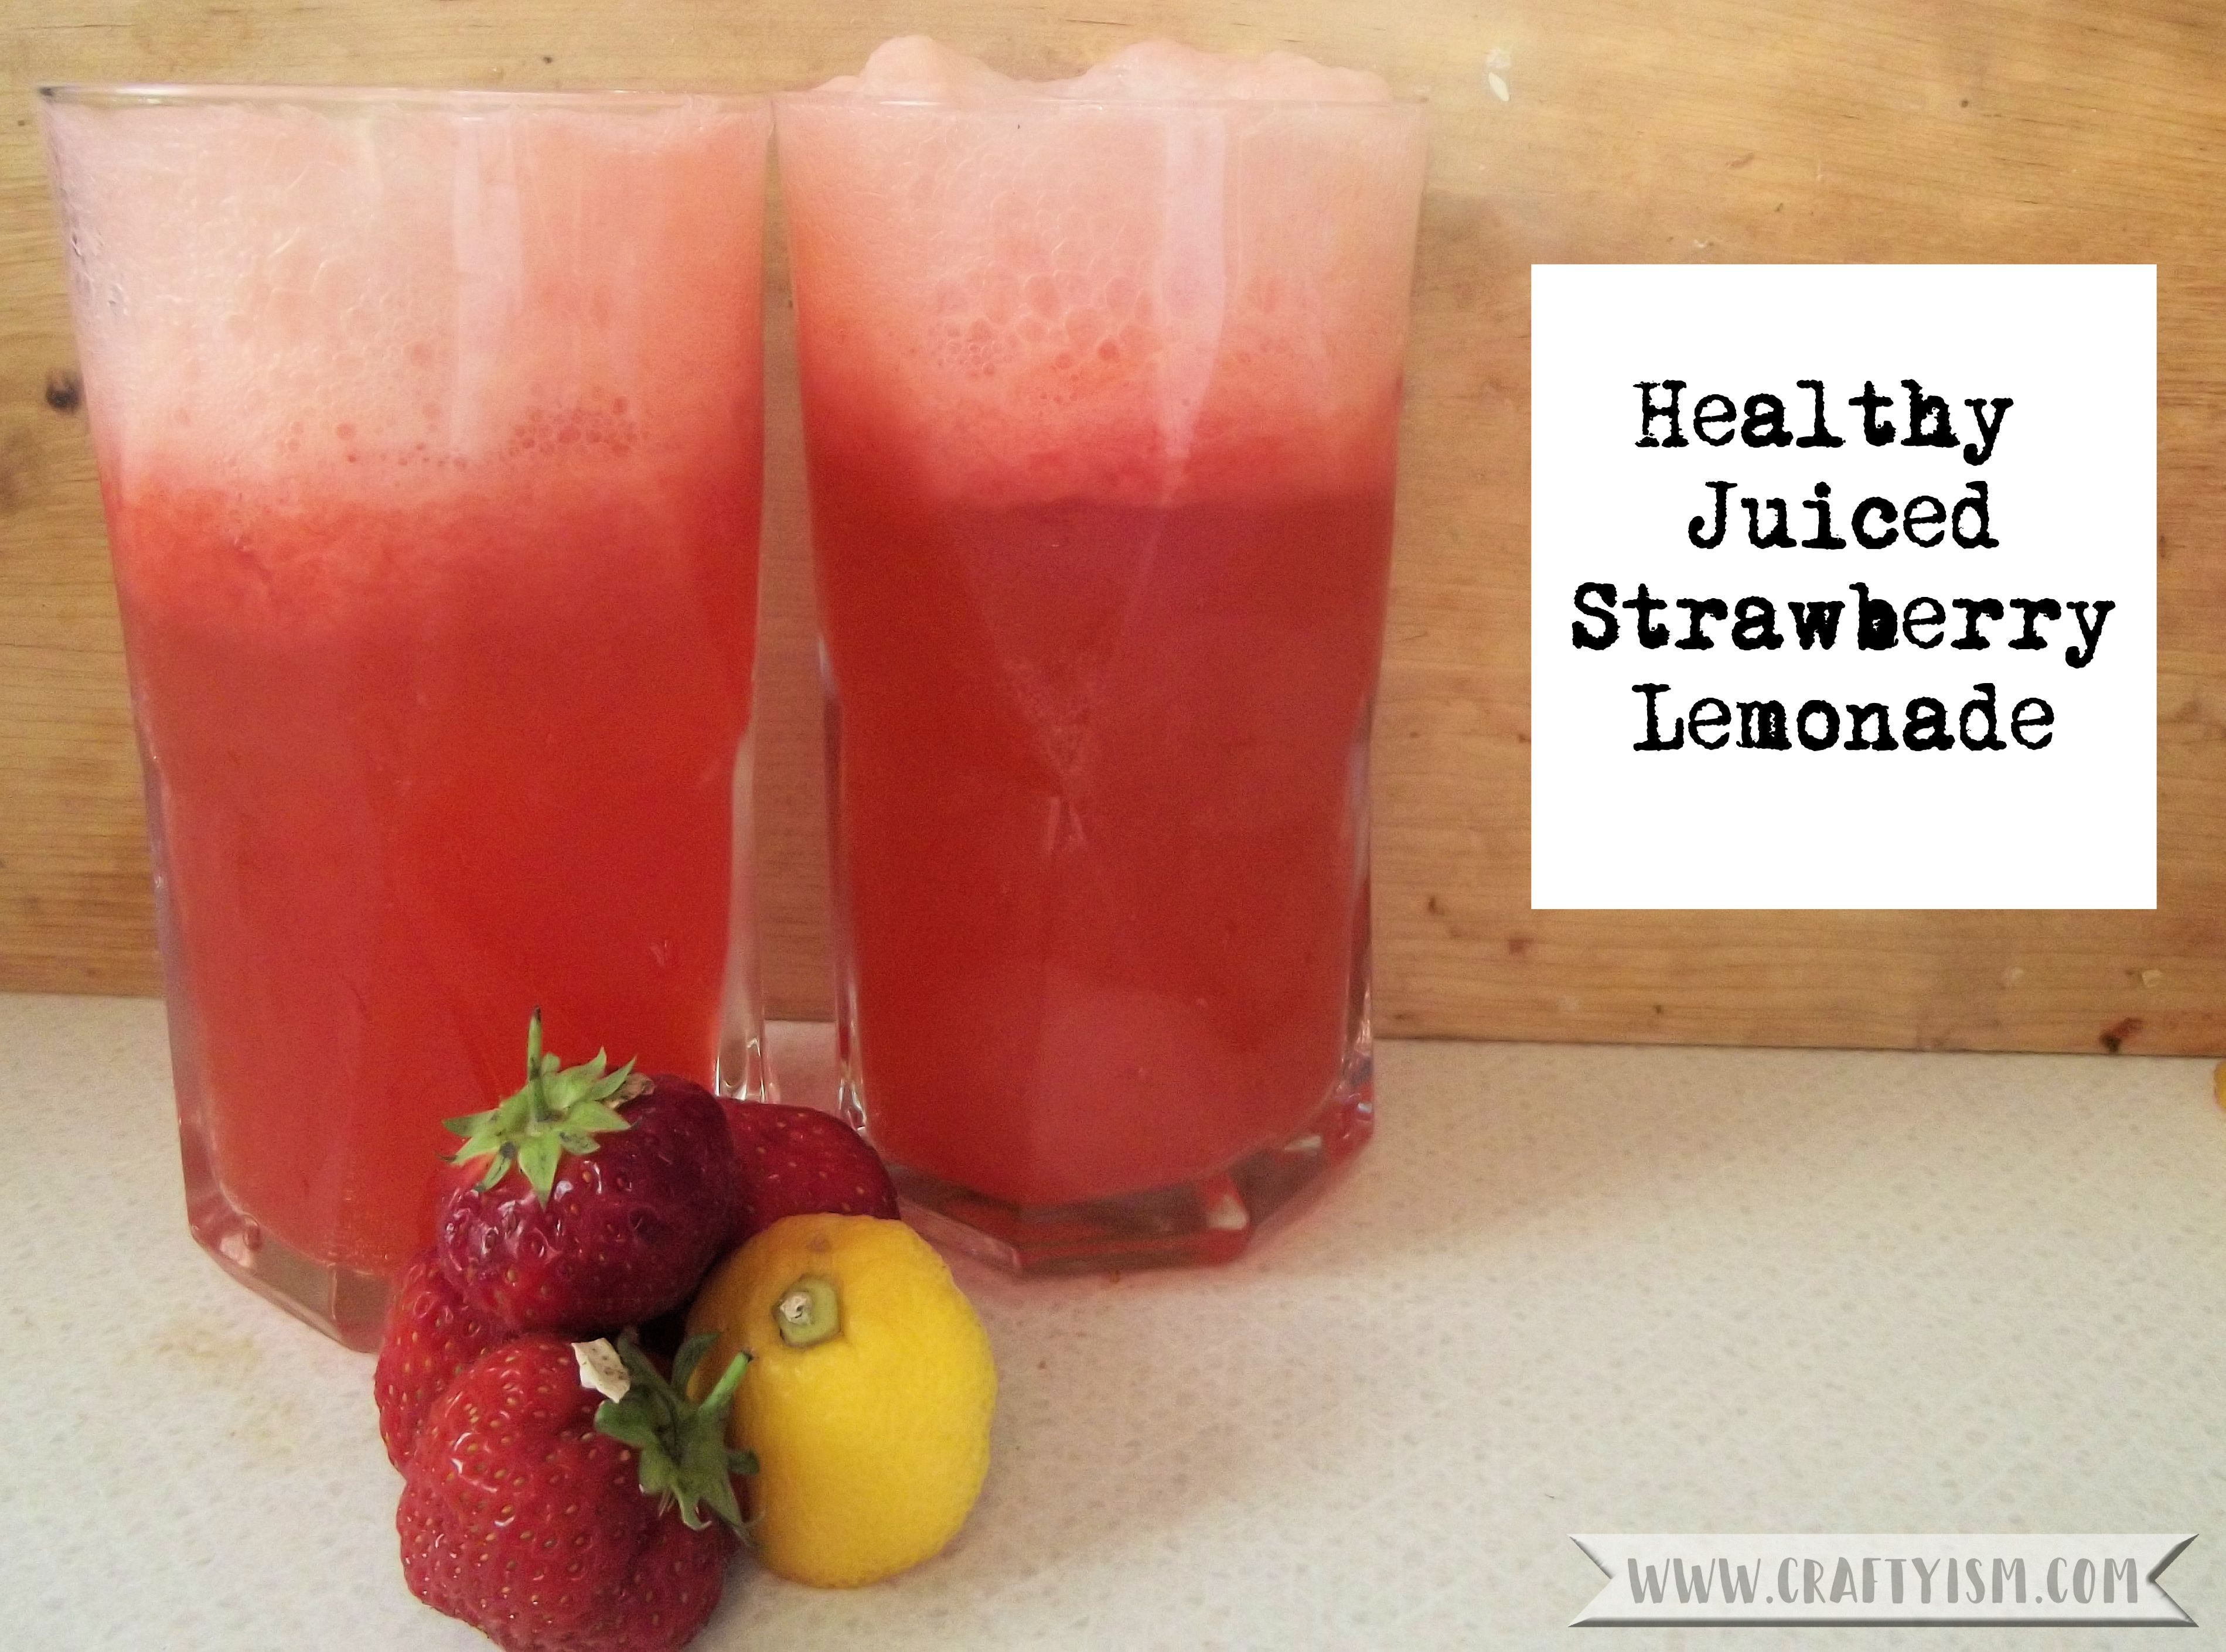 Healthy Juiced Strawberry Lemonade